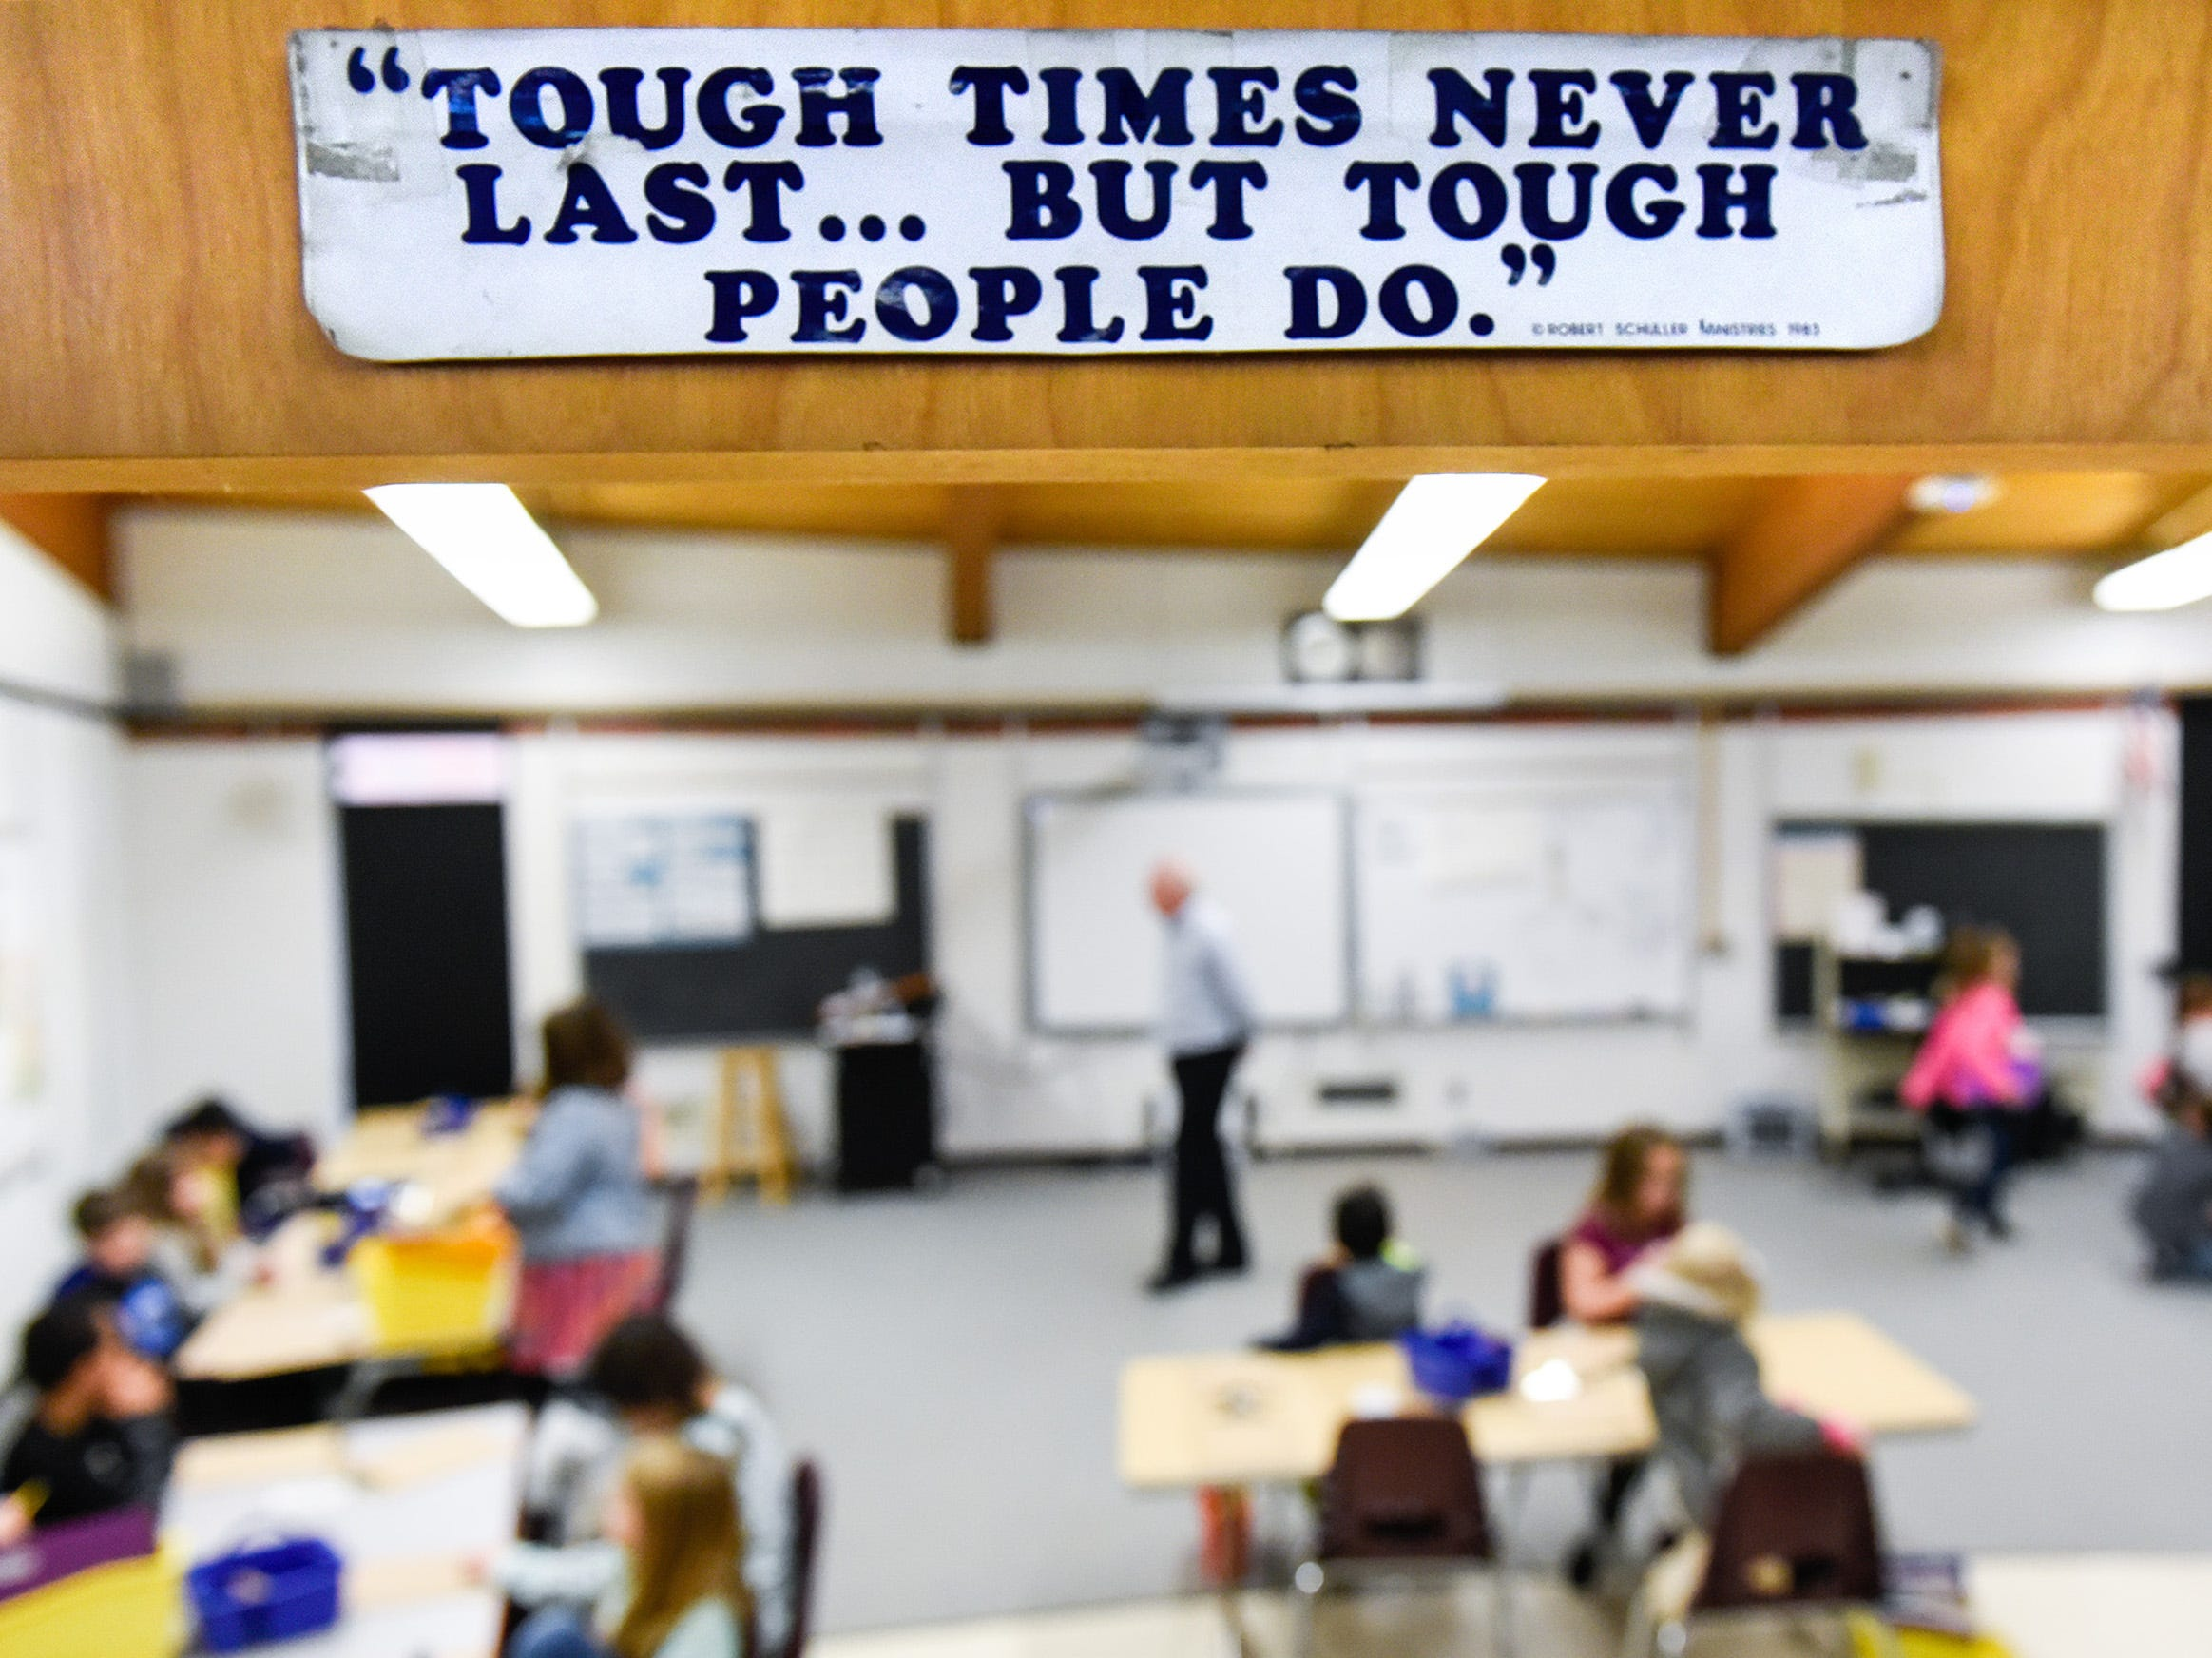 Teacher Brad Olson placed a sign over the door of his new classroom area Tuesday, Jan. 15, after a fire damaged classrooms at Pleasantview Elementary School in Sauk Rapids.